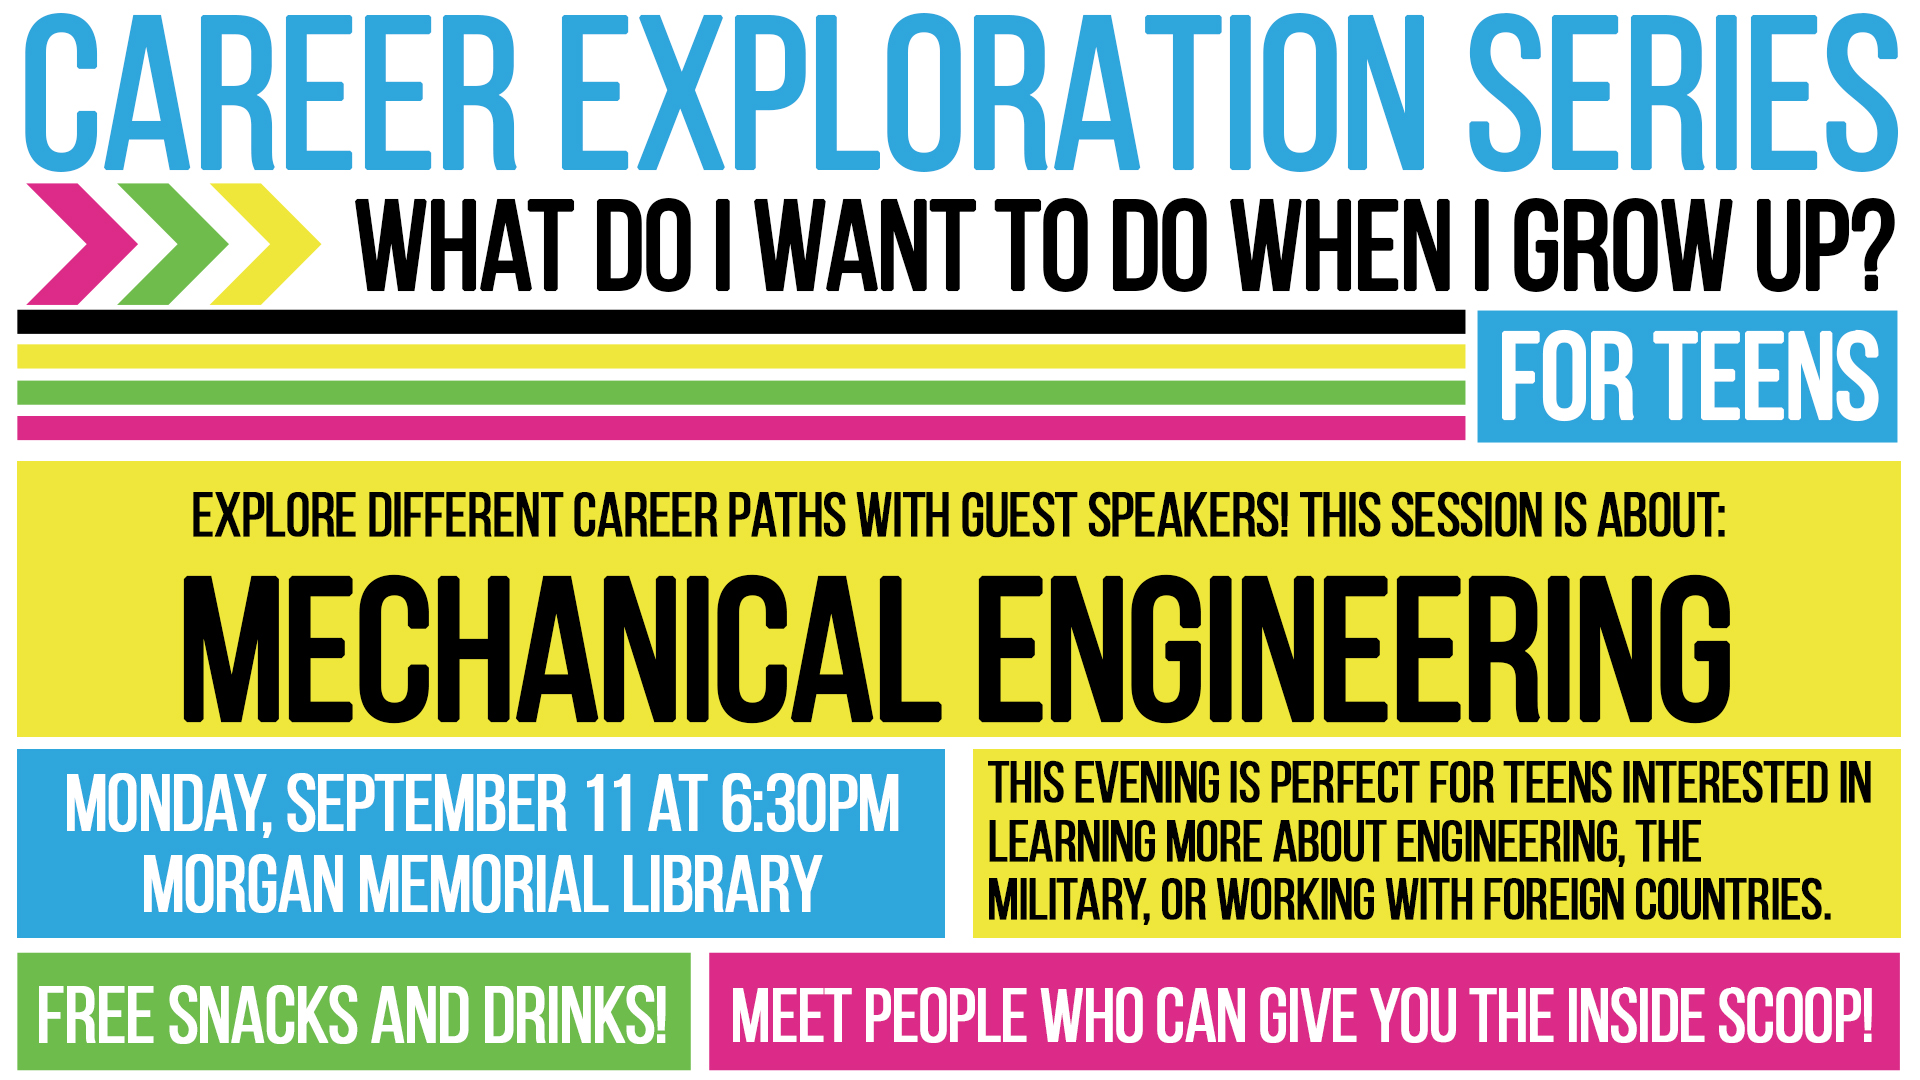 Career Exploration Series: What Do I Want To Do When I Grow Up? (For Teens!)